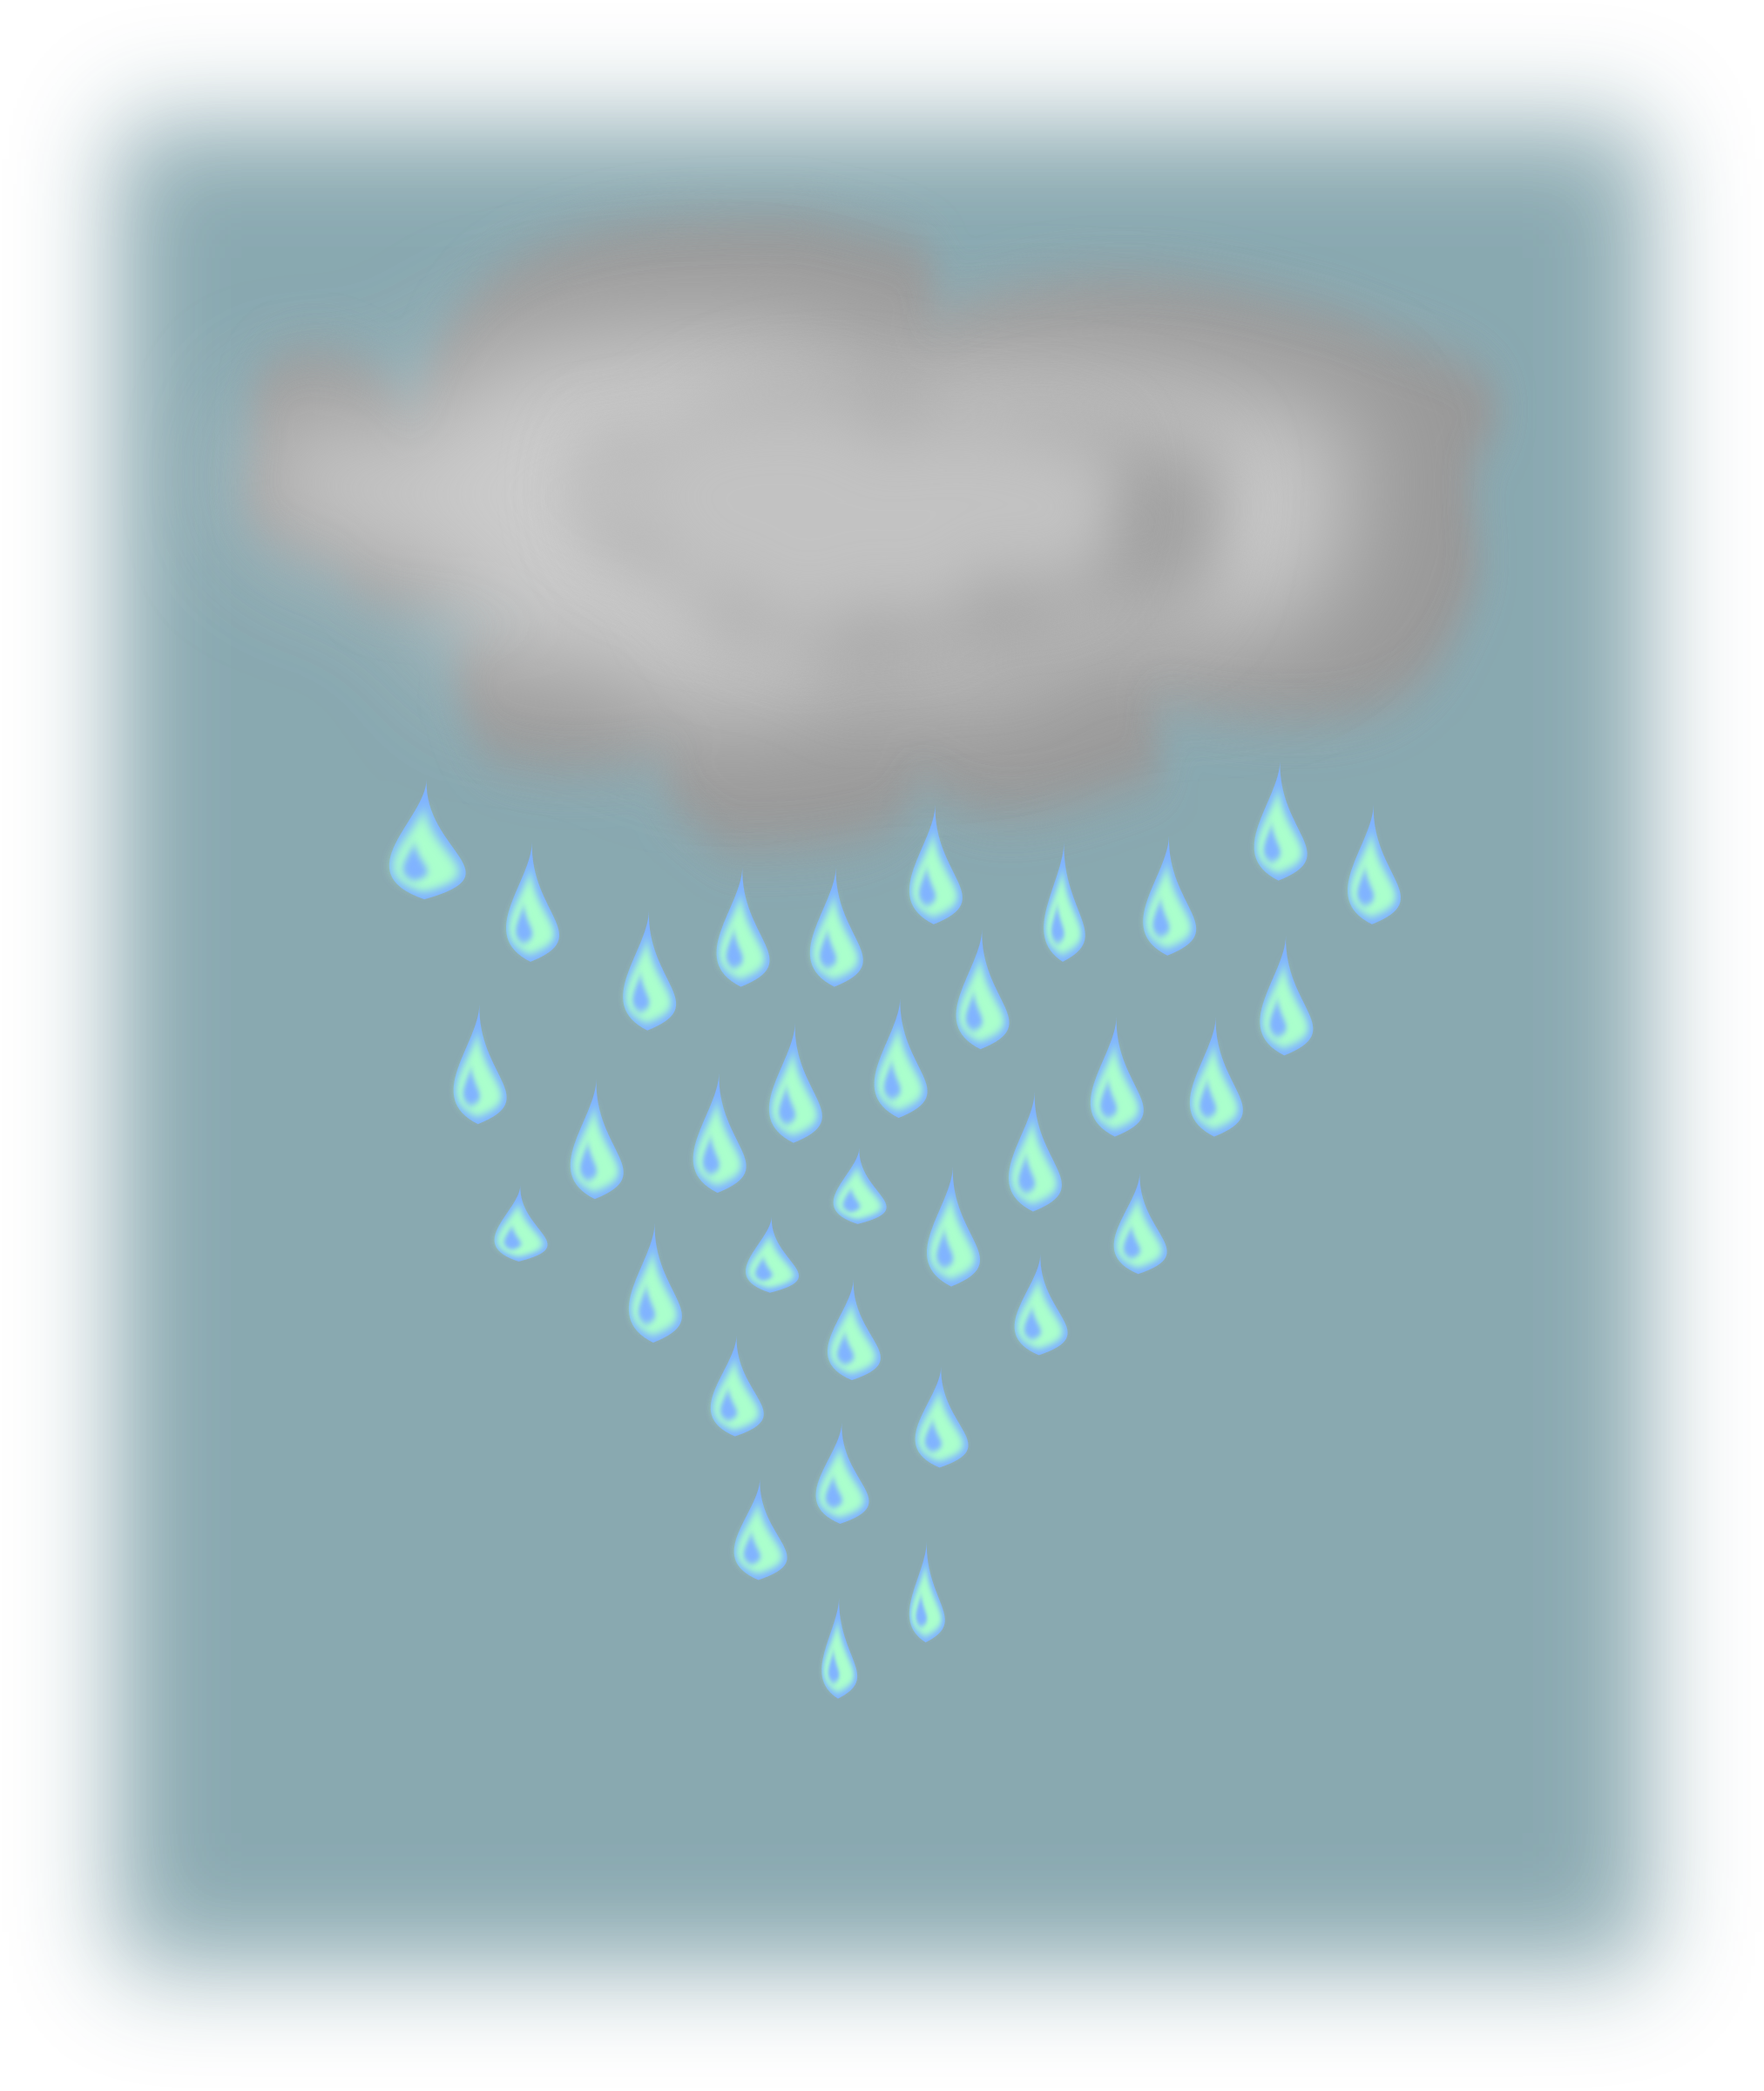 lluvia (rain cloud) by silvia2k1